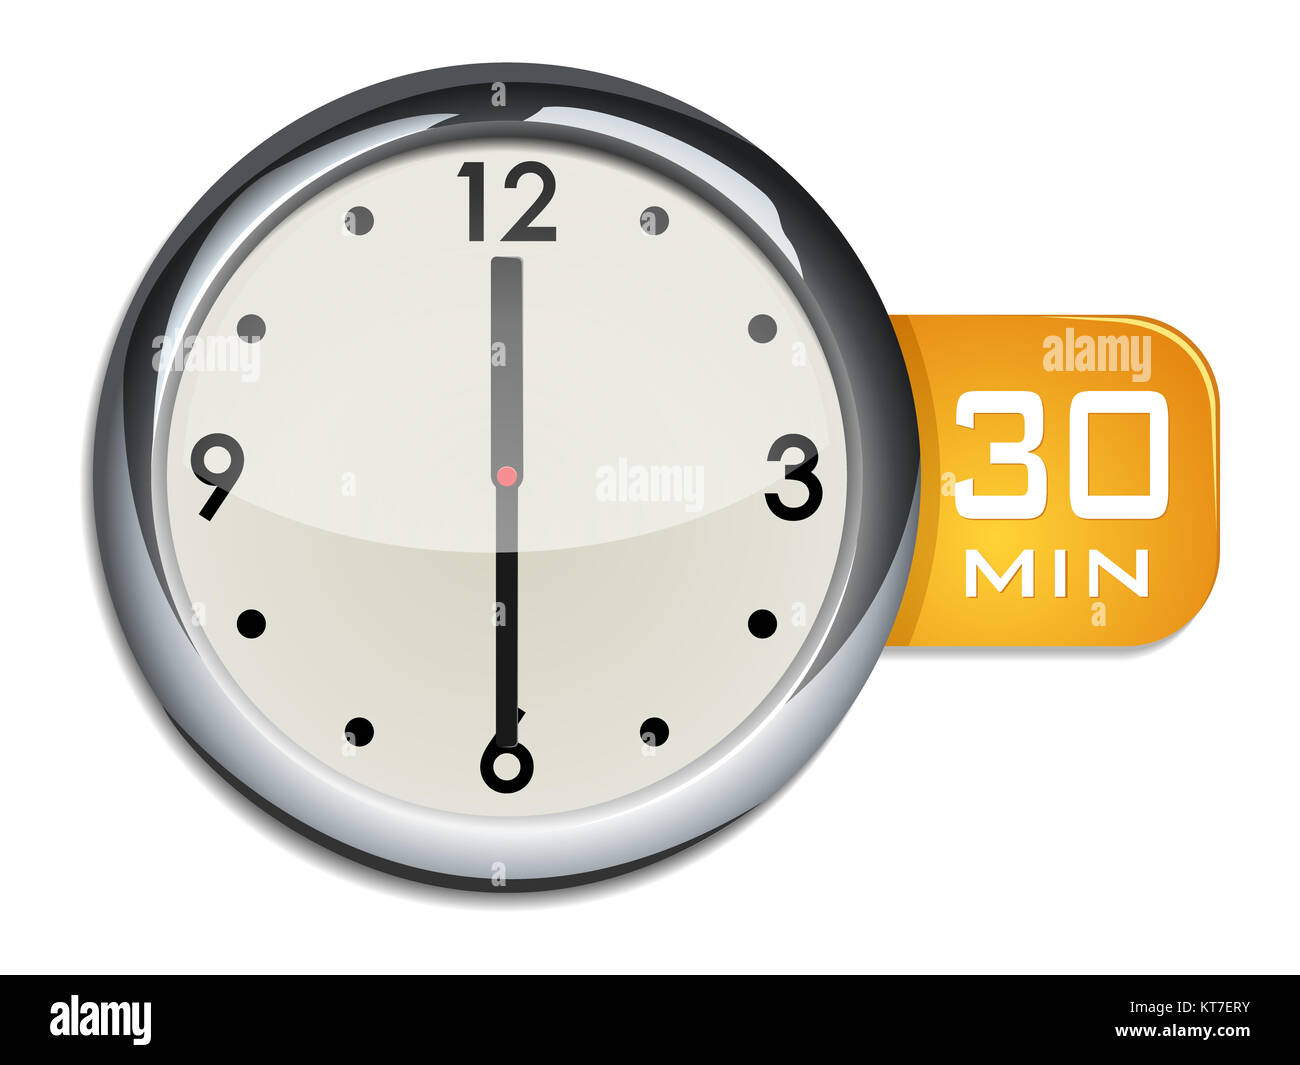 office wall clock timer 30 stock photos office wall clock timer 30